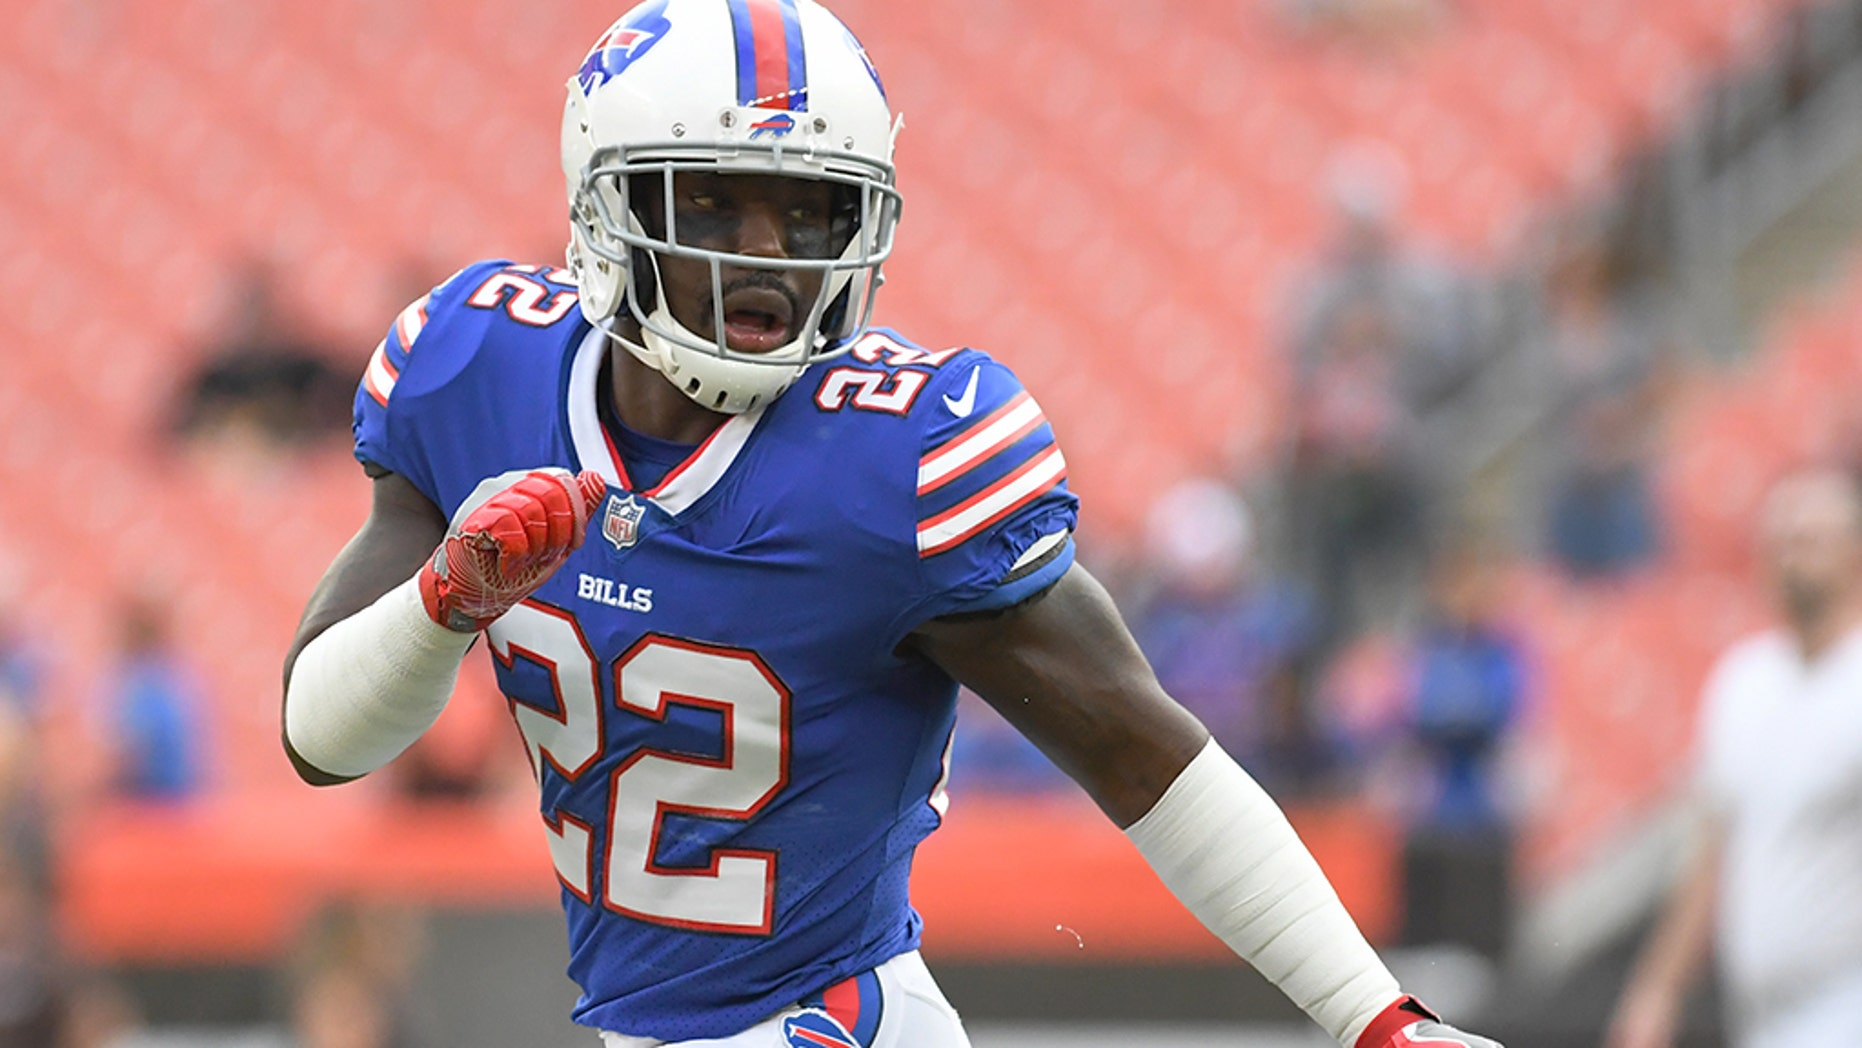 Vontae Davis spent six years with the Indianapolis Colts before signing with the Buffalo Bills as a free agent.